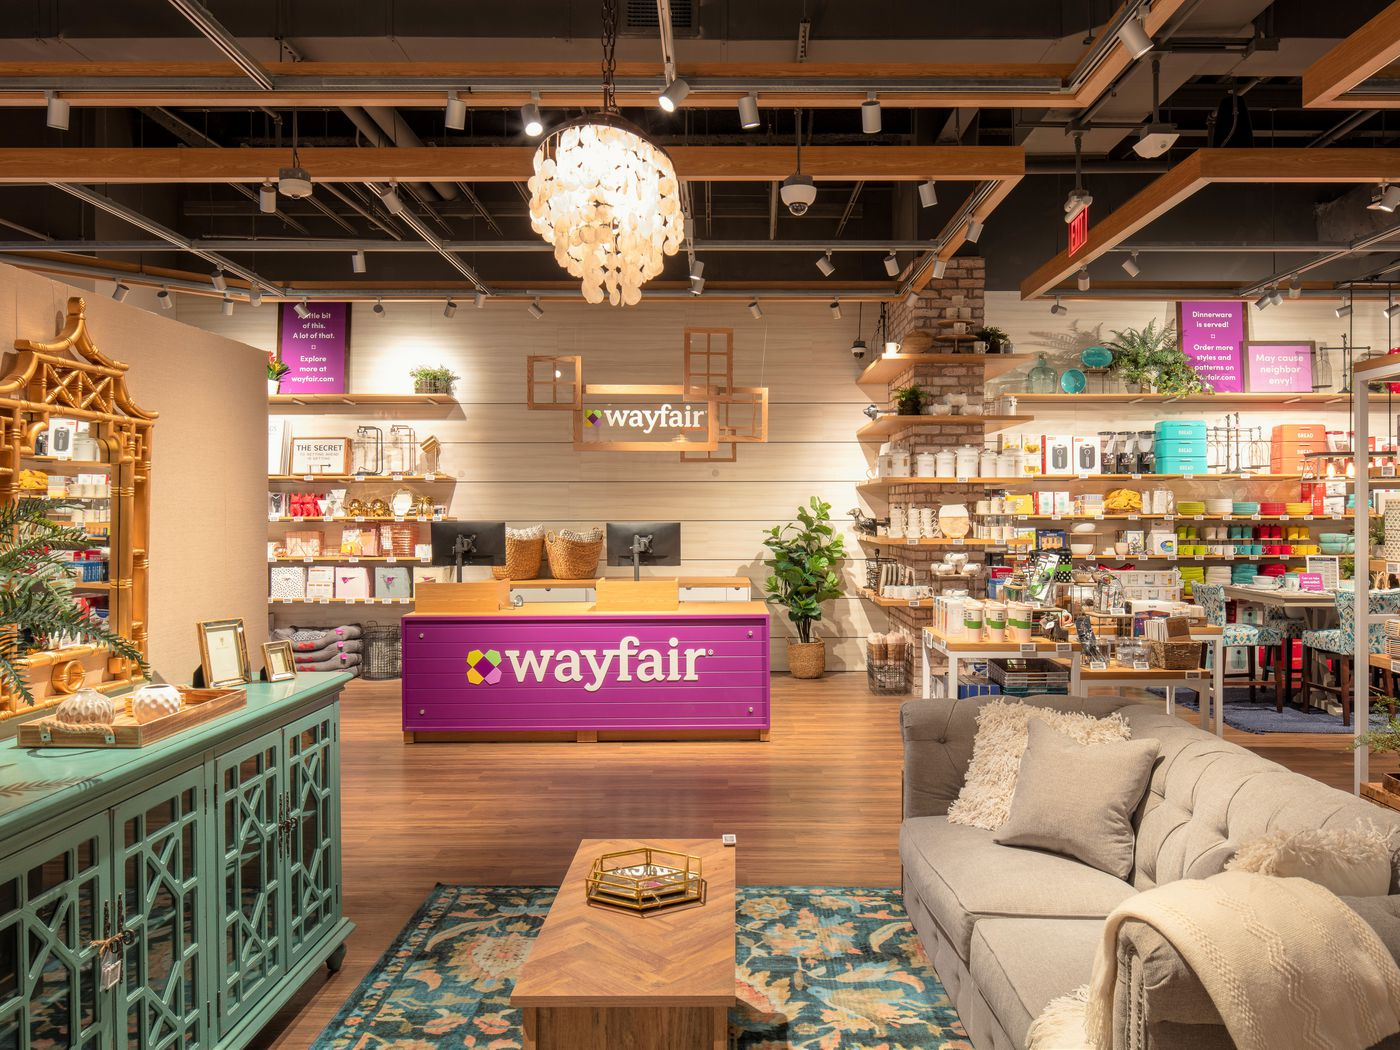 Wayfair, explained: the walkout, the selection, and how it works - Vox